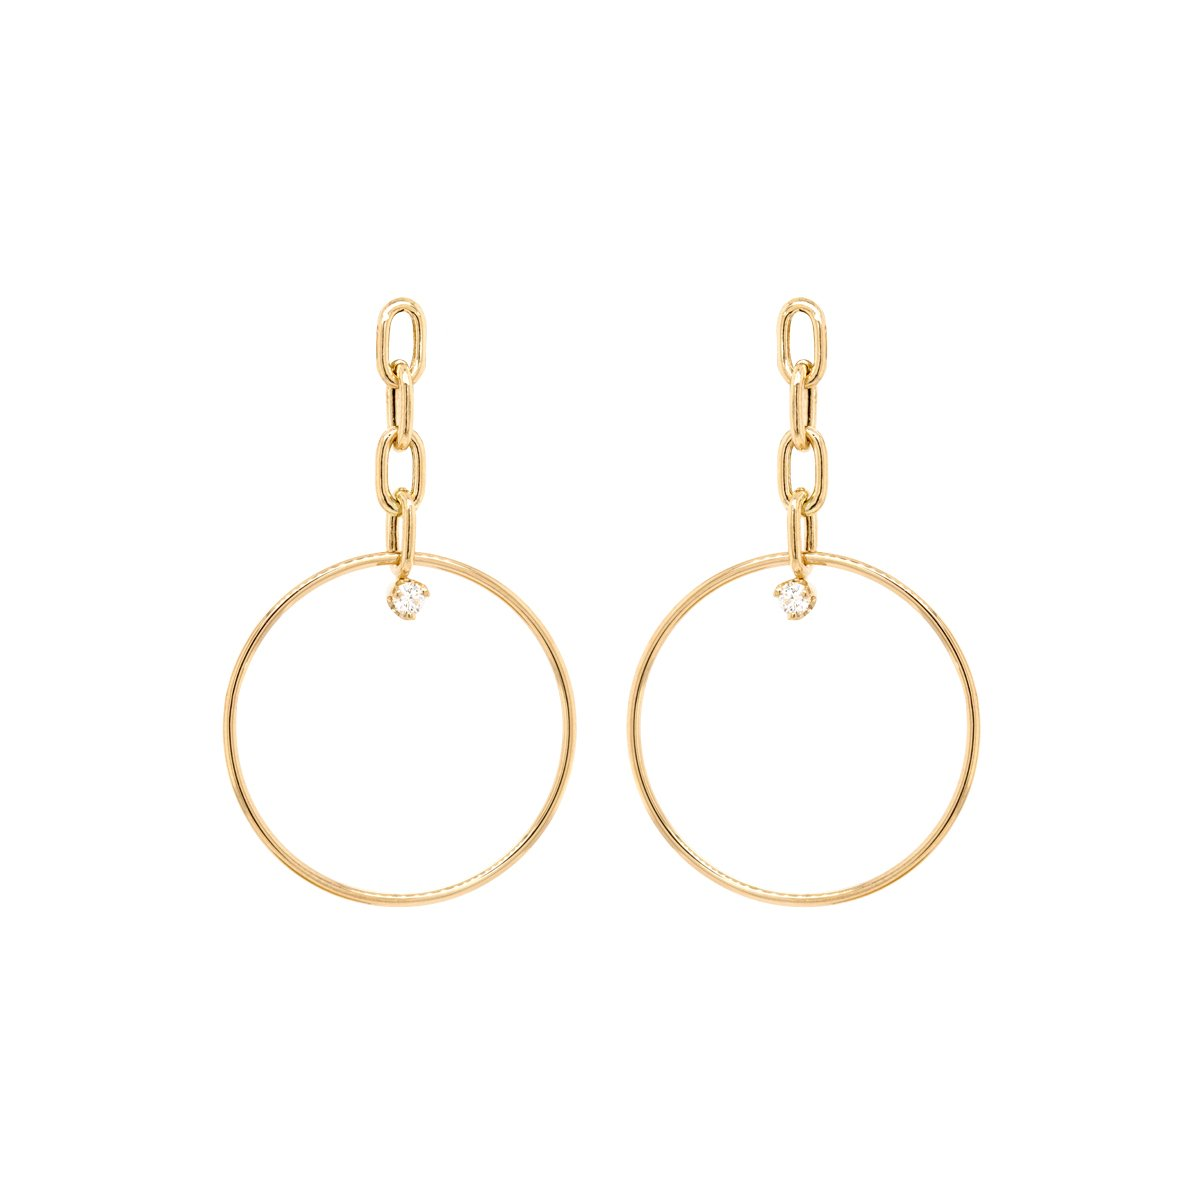 14K Yellow Gold Link Earrings